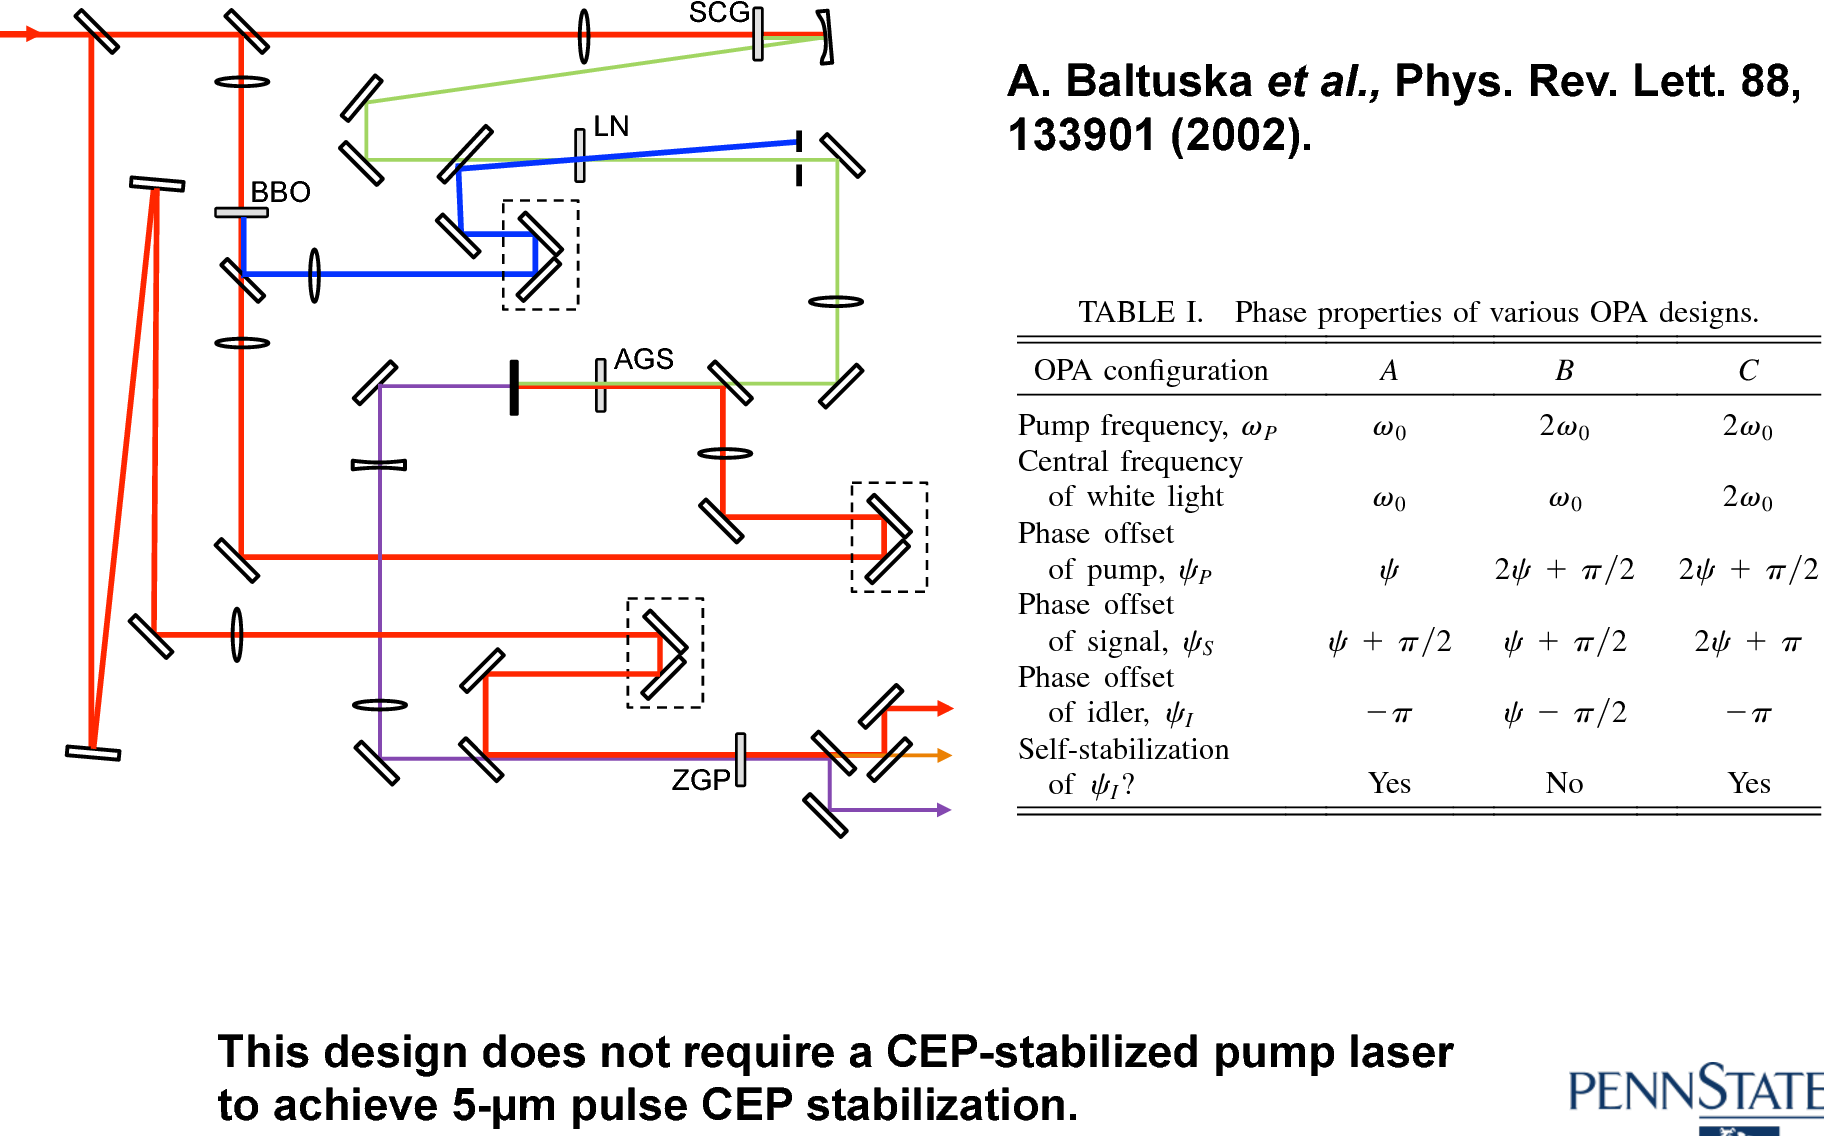 TABLE I. Phase properties of various OPA designs.